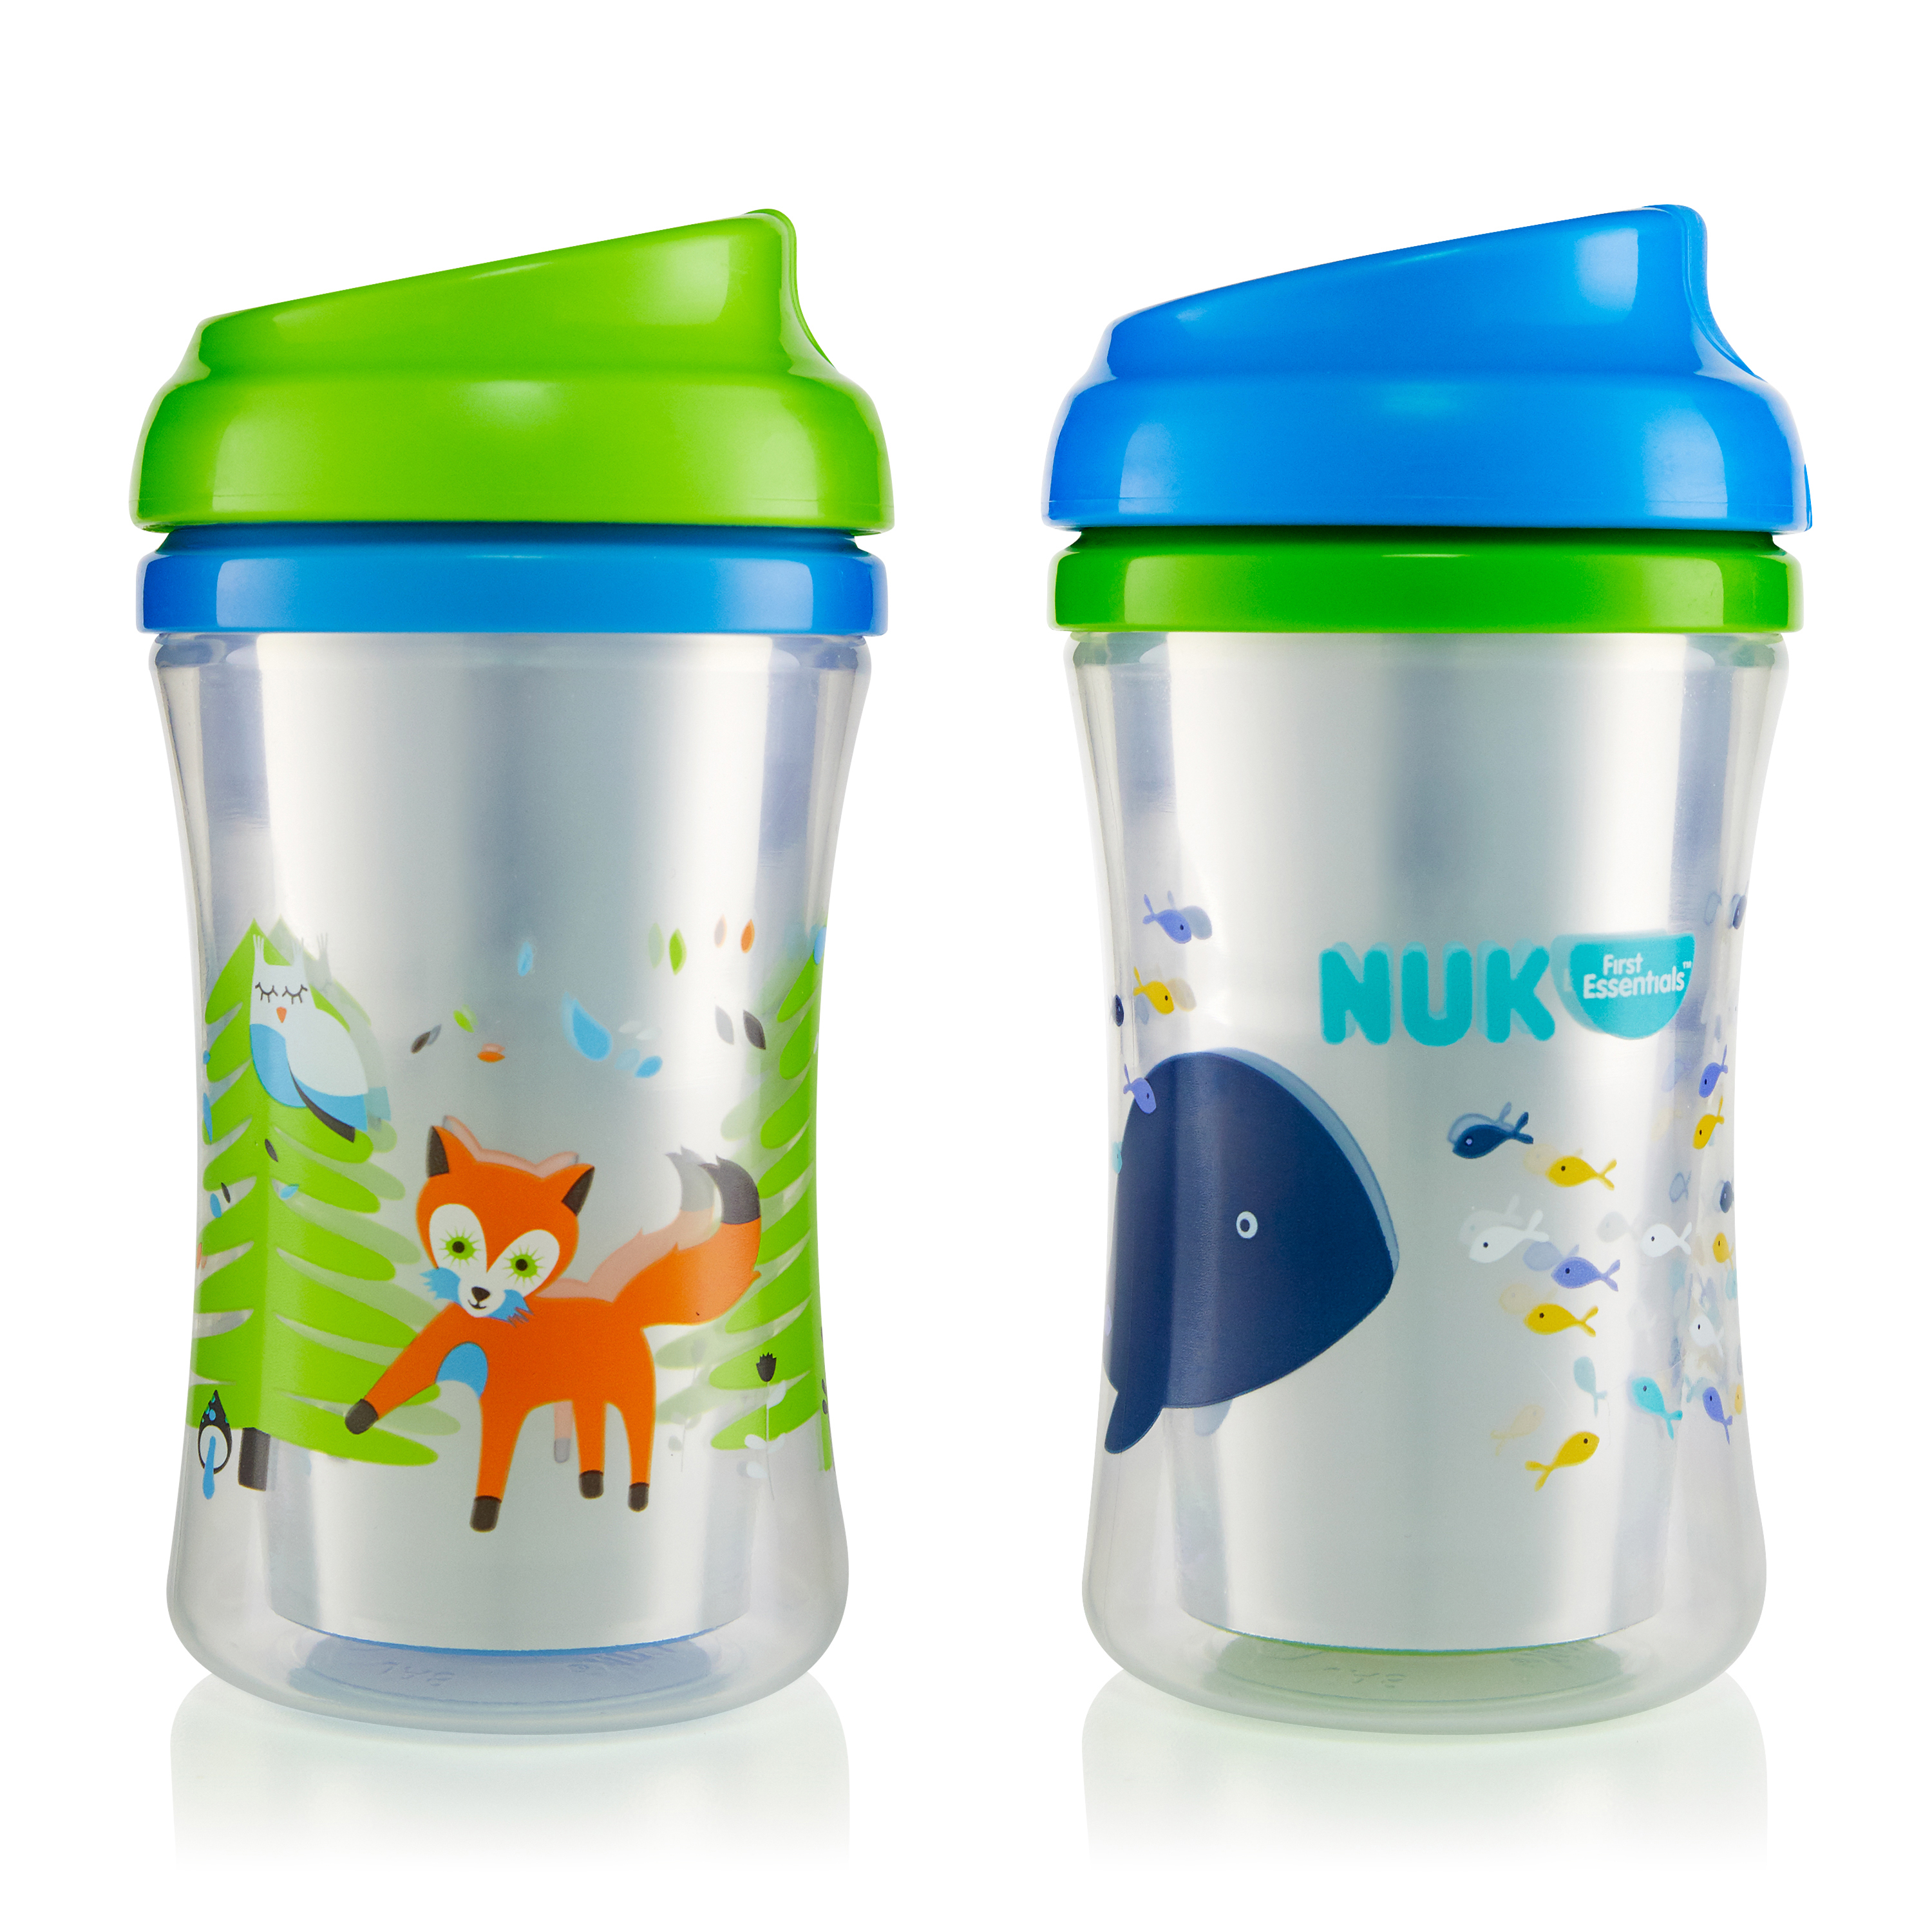 First Essentials by NUK Insulated Cup-like Rim Sippy Cup, 9 oz., 2-Pack by NUK